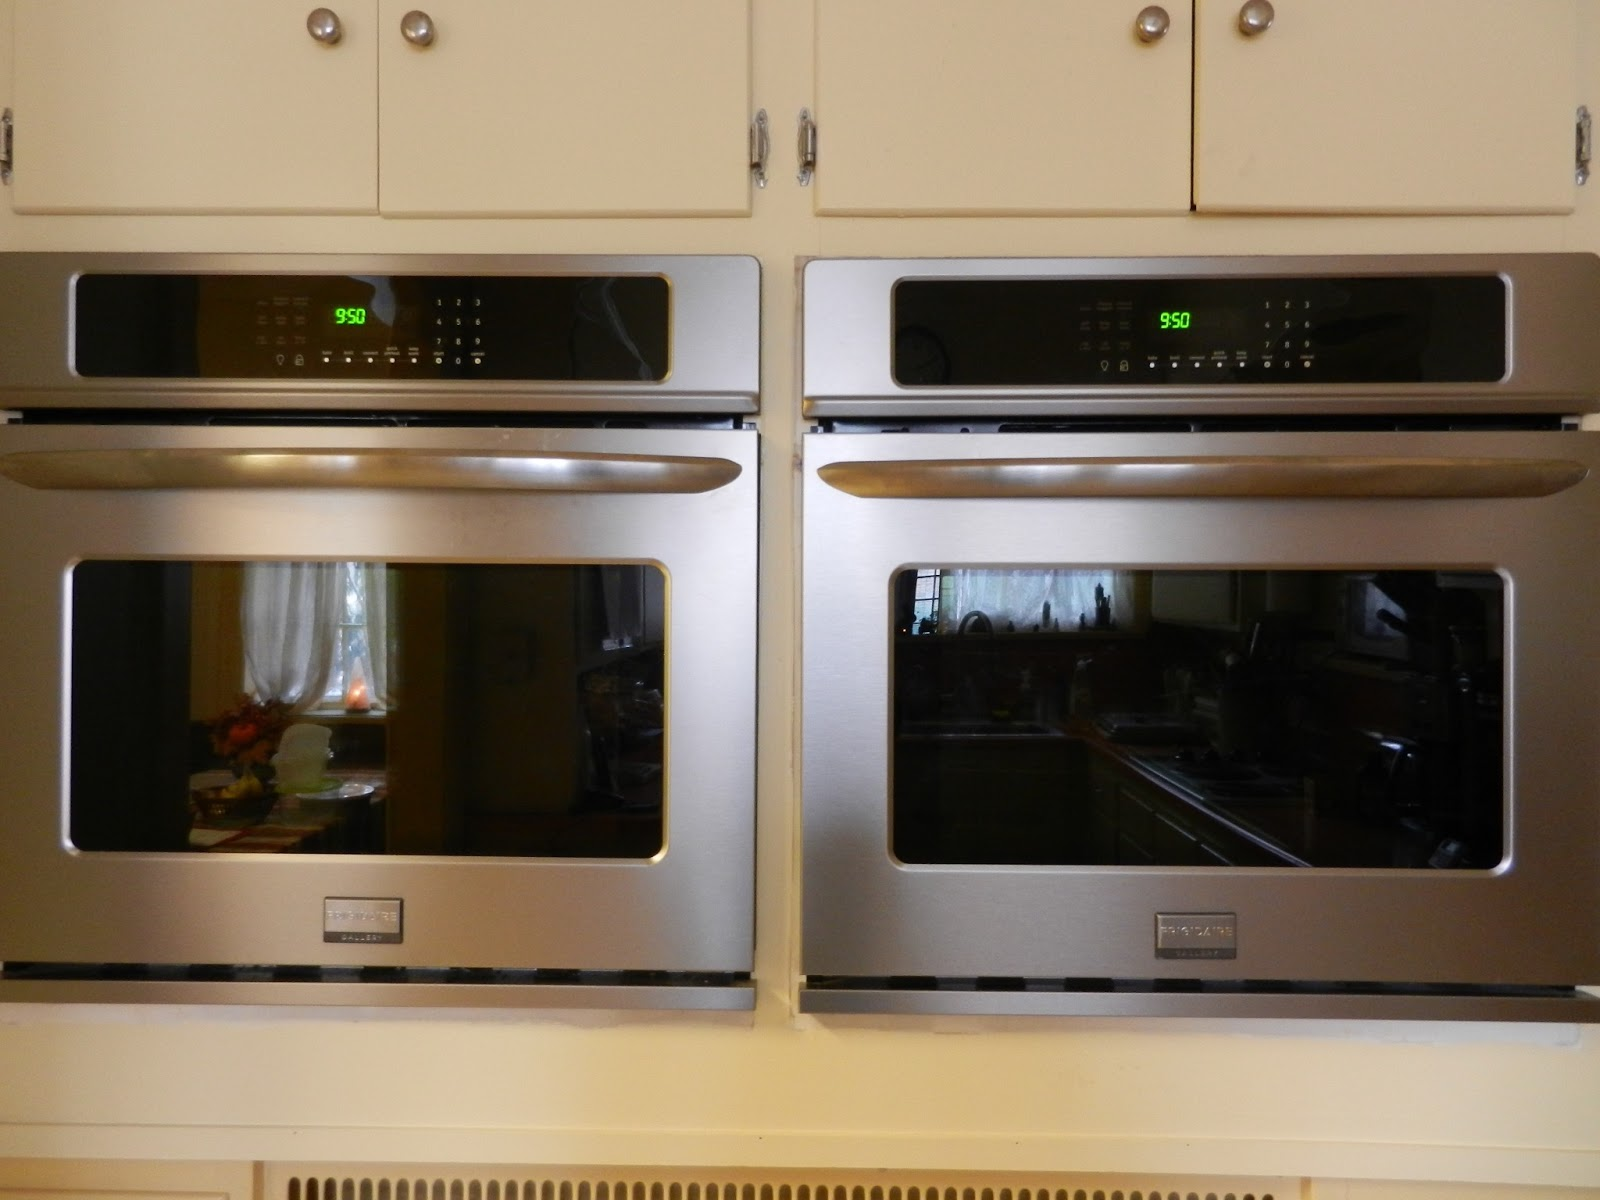 Side By Side Ovens Elegant Neff Ovens Side By Side With Side By Side Ovens Full Size Of